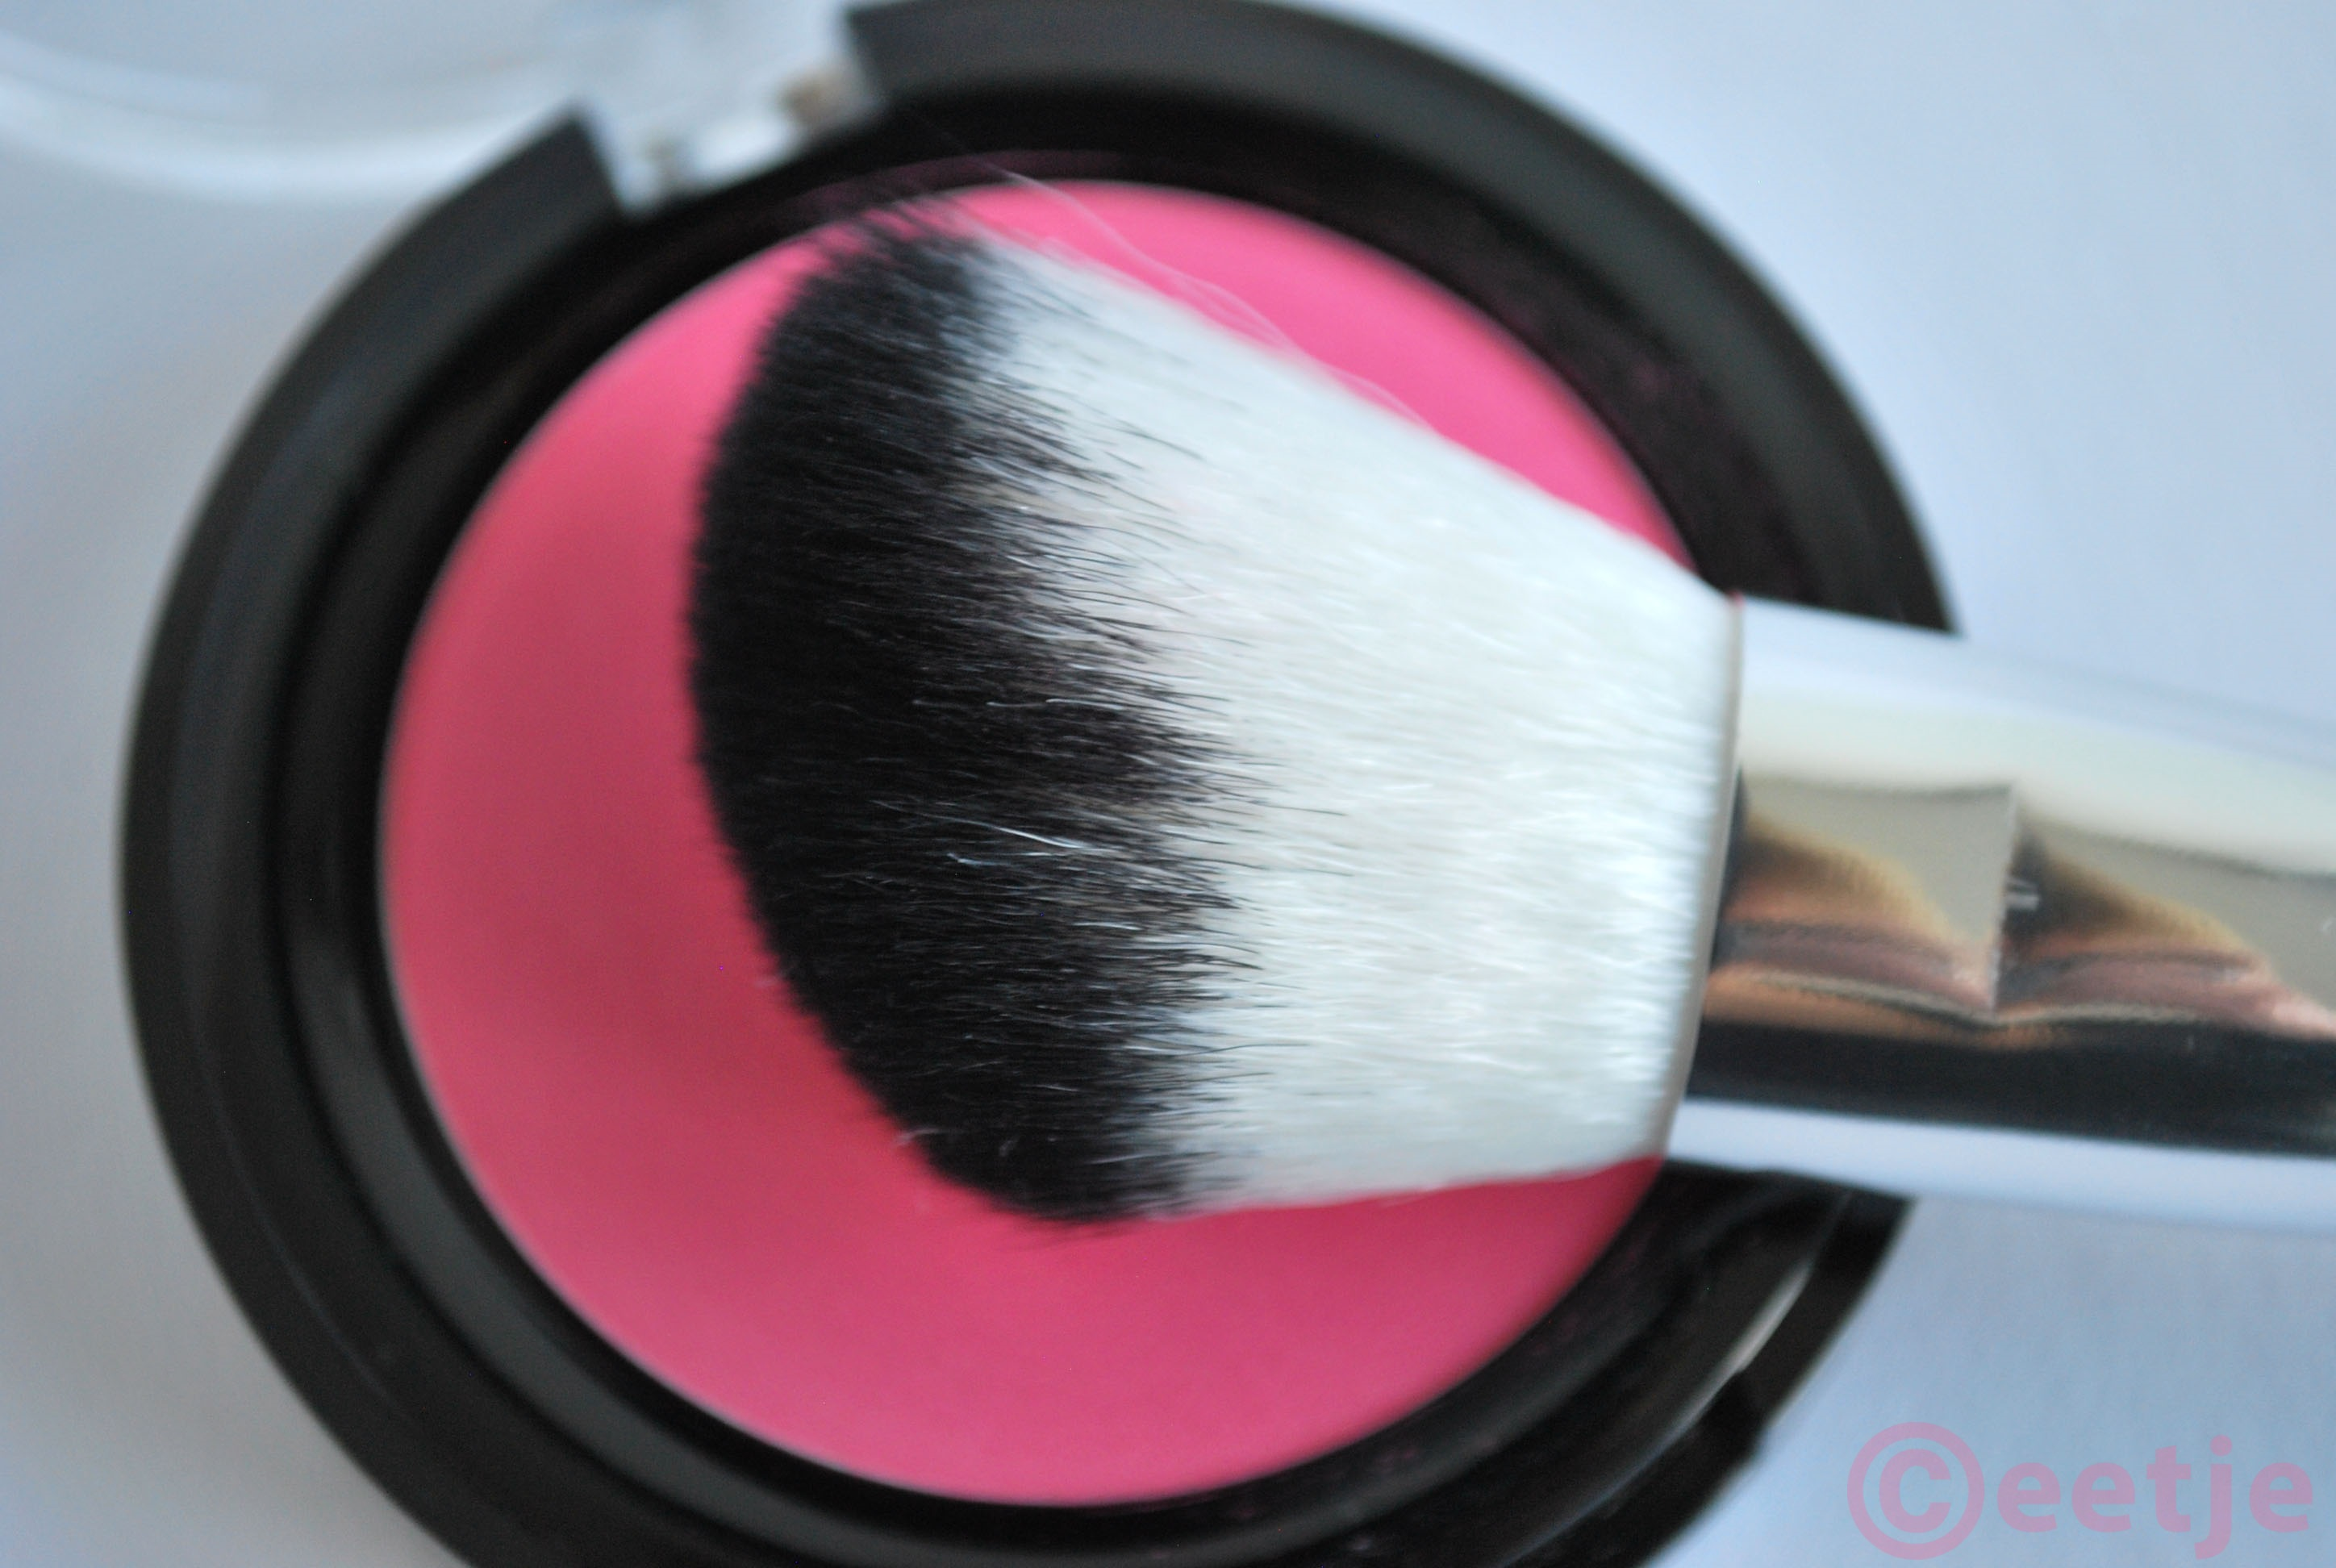 review Budget blush kwast Hema 159 contour